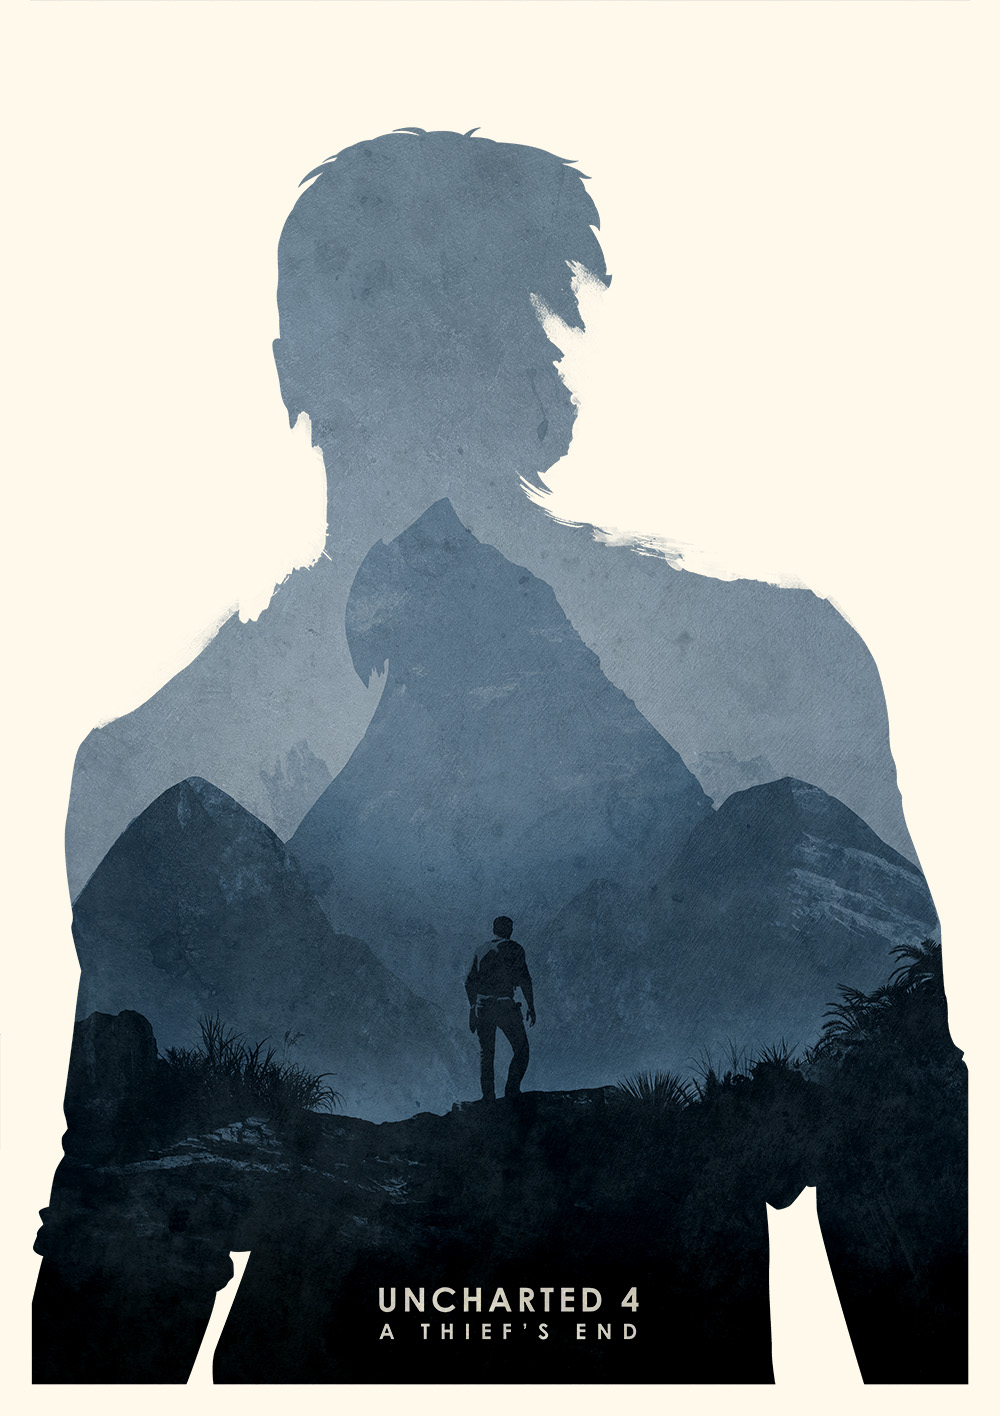 Uncharted 4 Posterspy